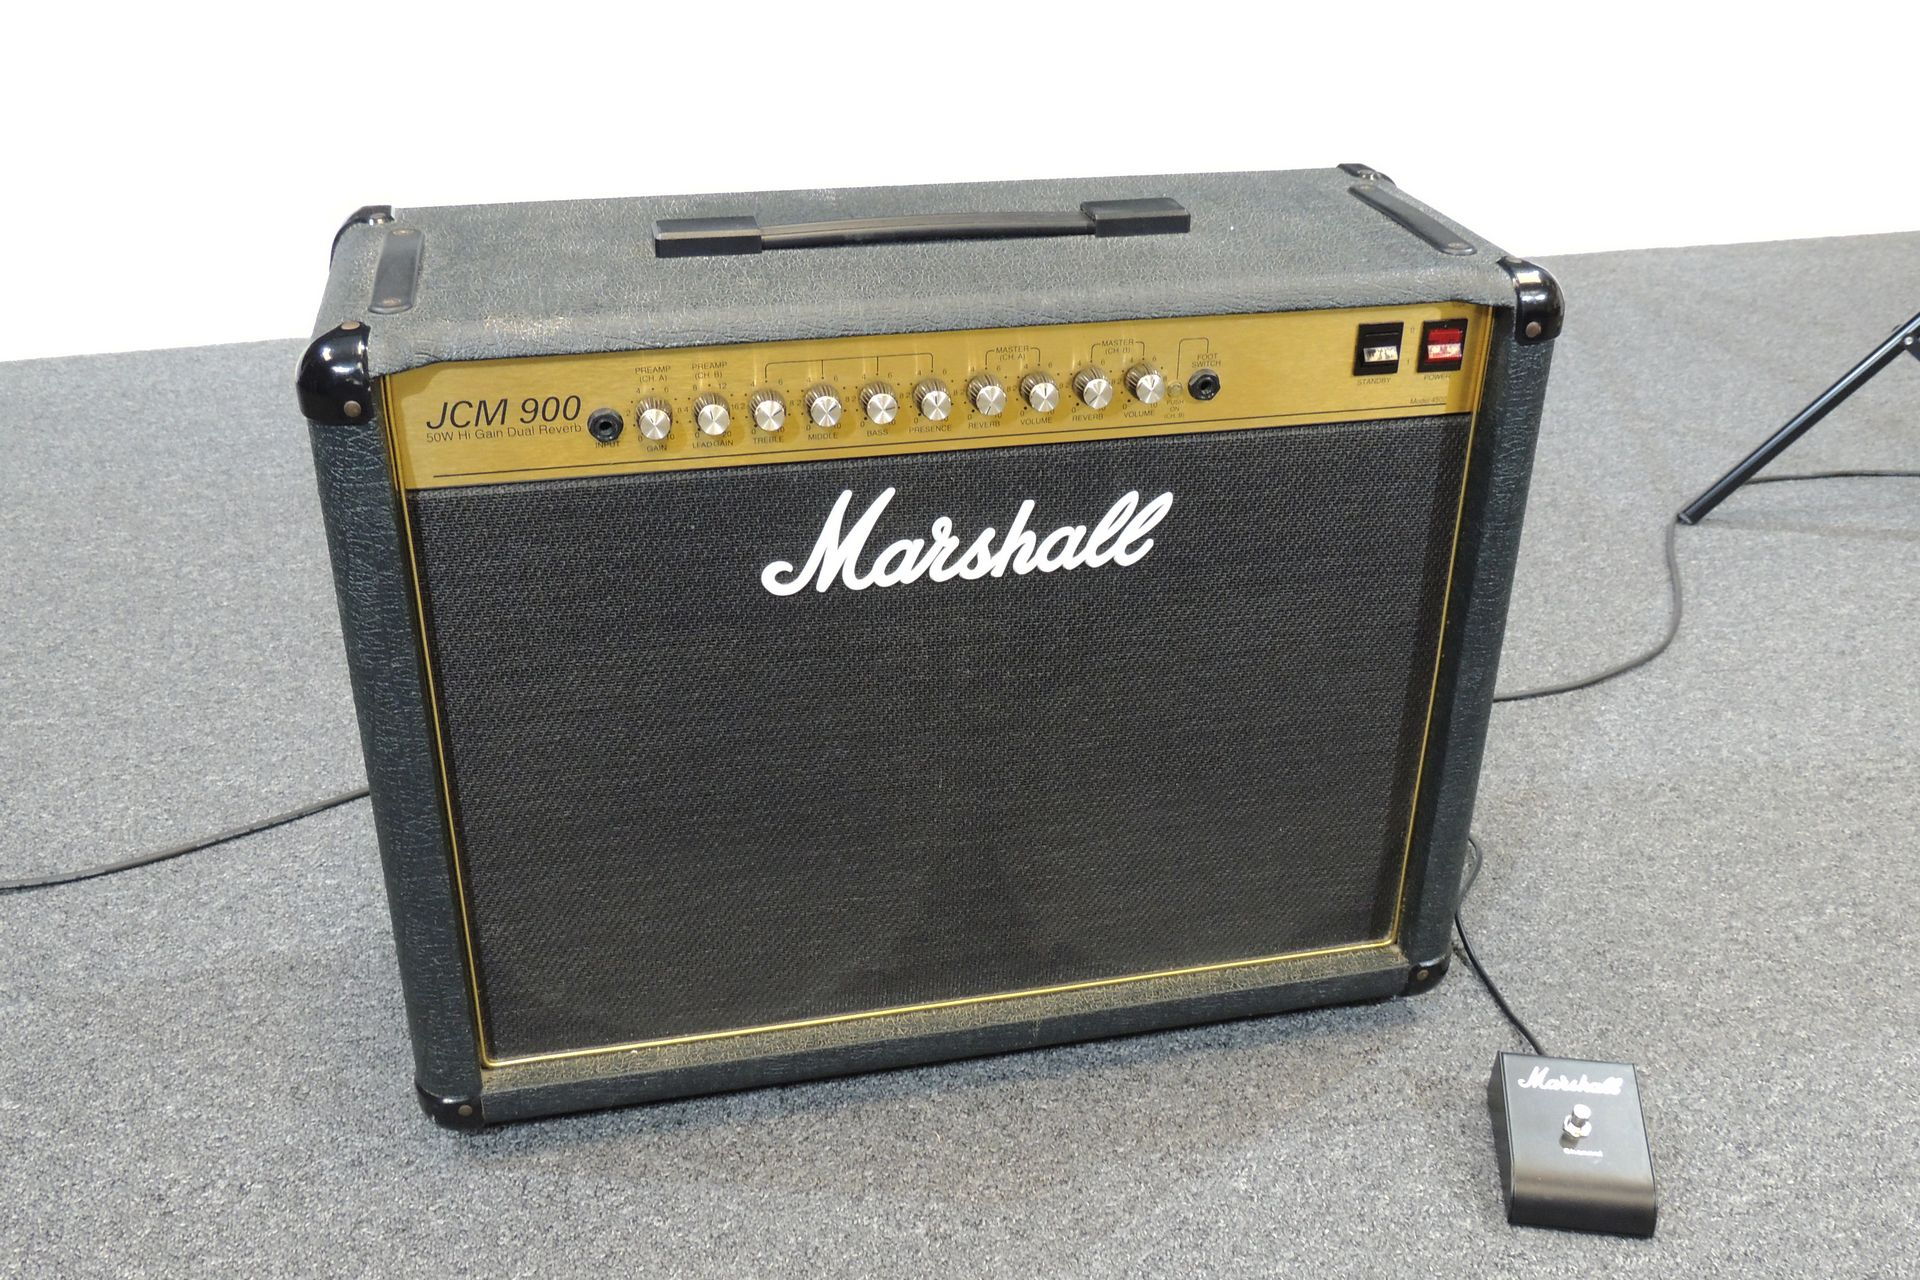 Marshall JCM900 Dual Reverb 4502 2 x 12 combo for sale at Plasma Music